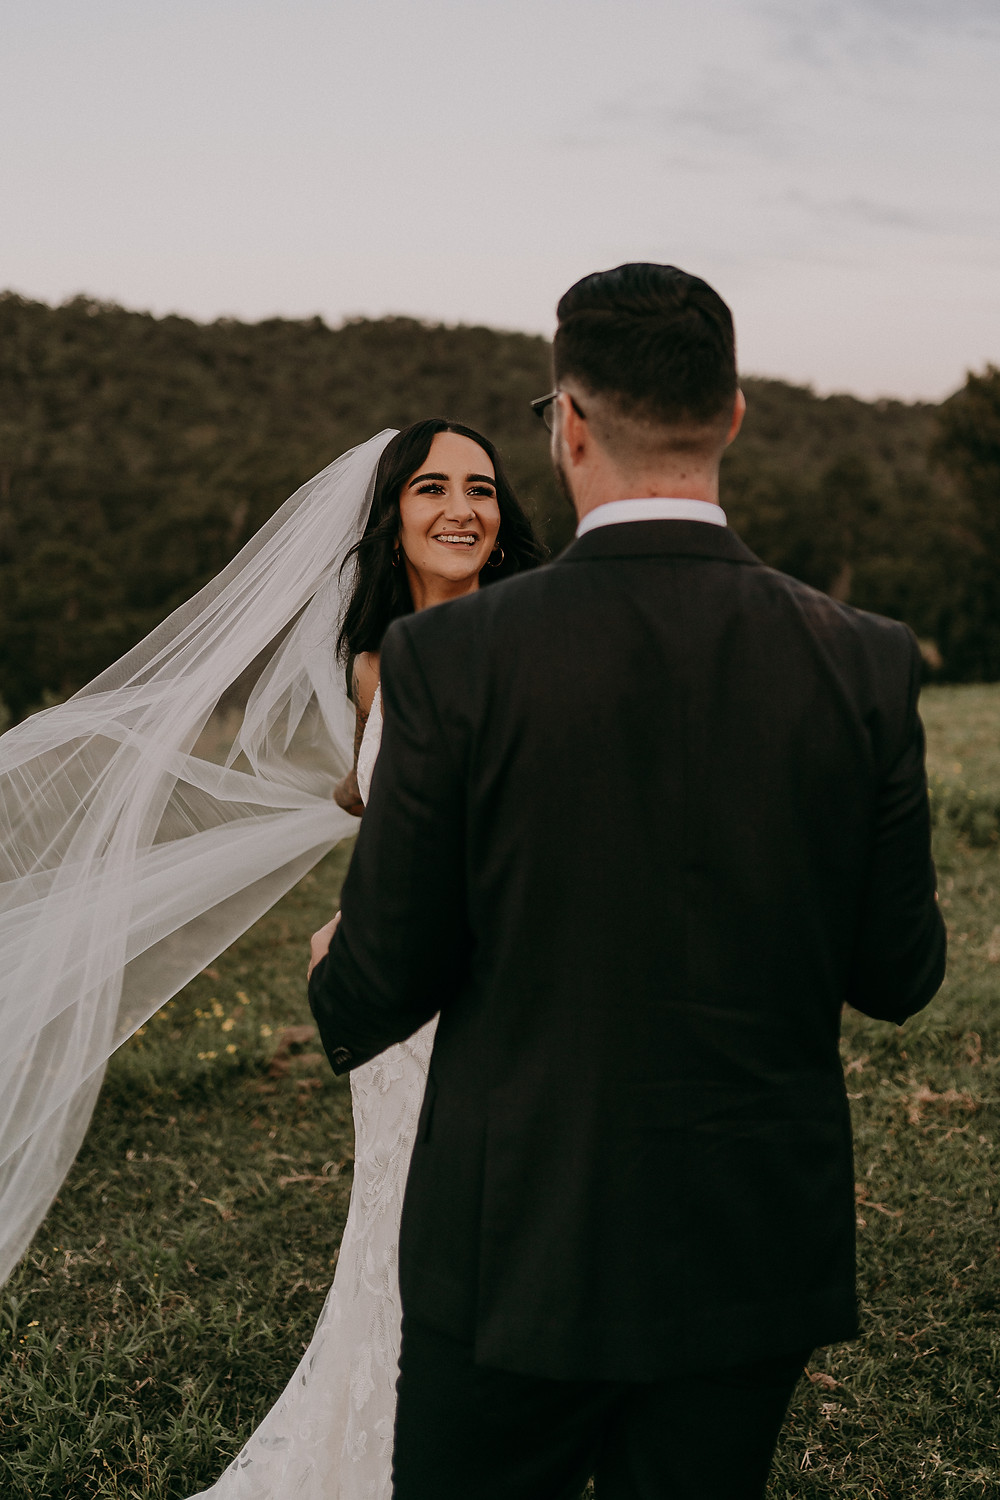 Wedding-Photography-Portraits-Natural-Wedding-Photos-The-Love-Archives